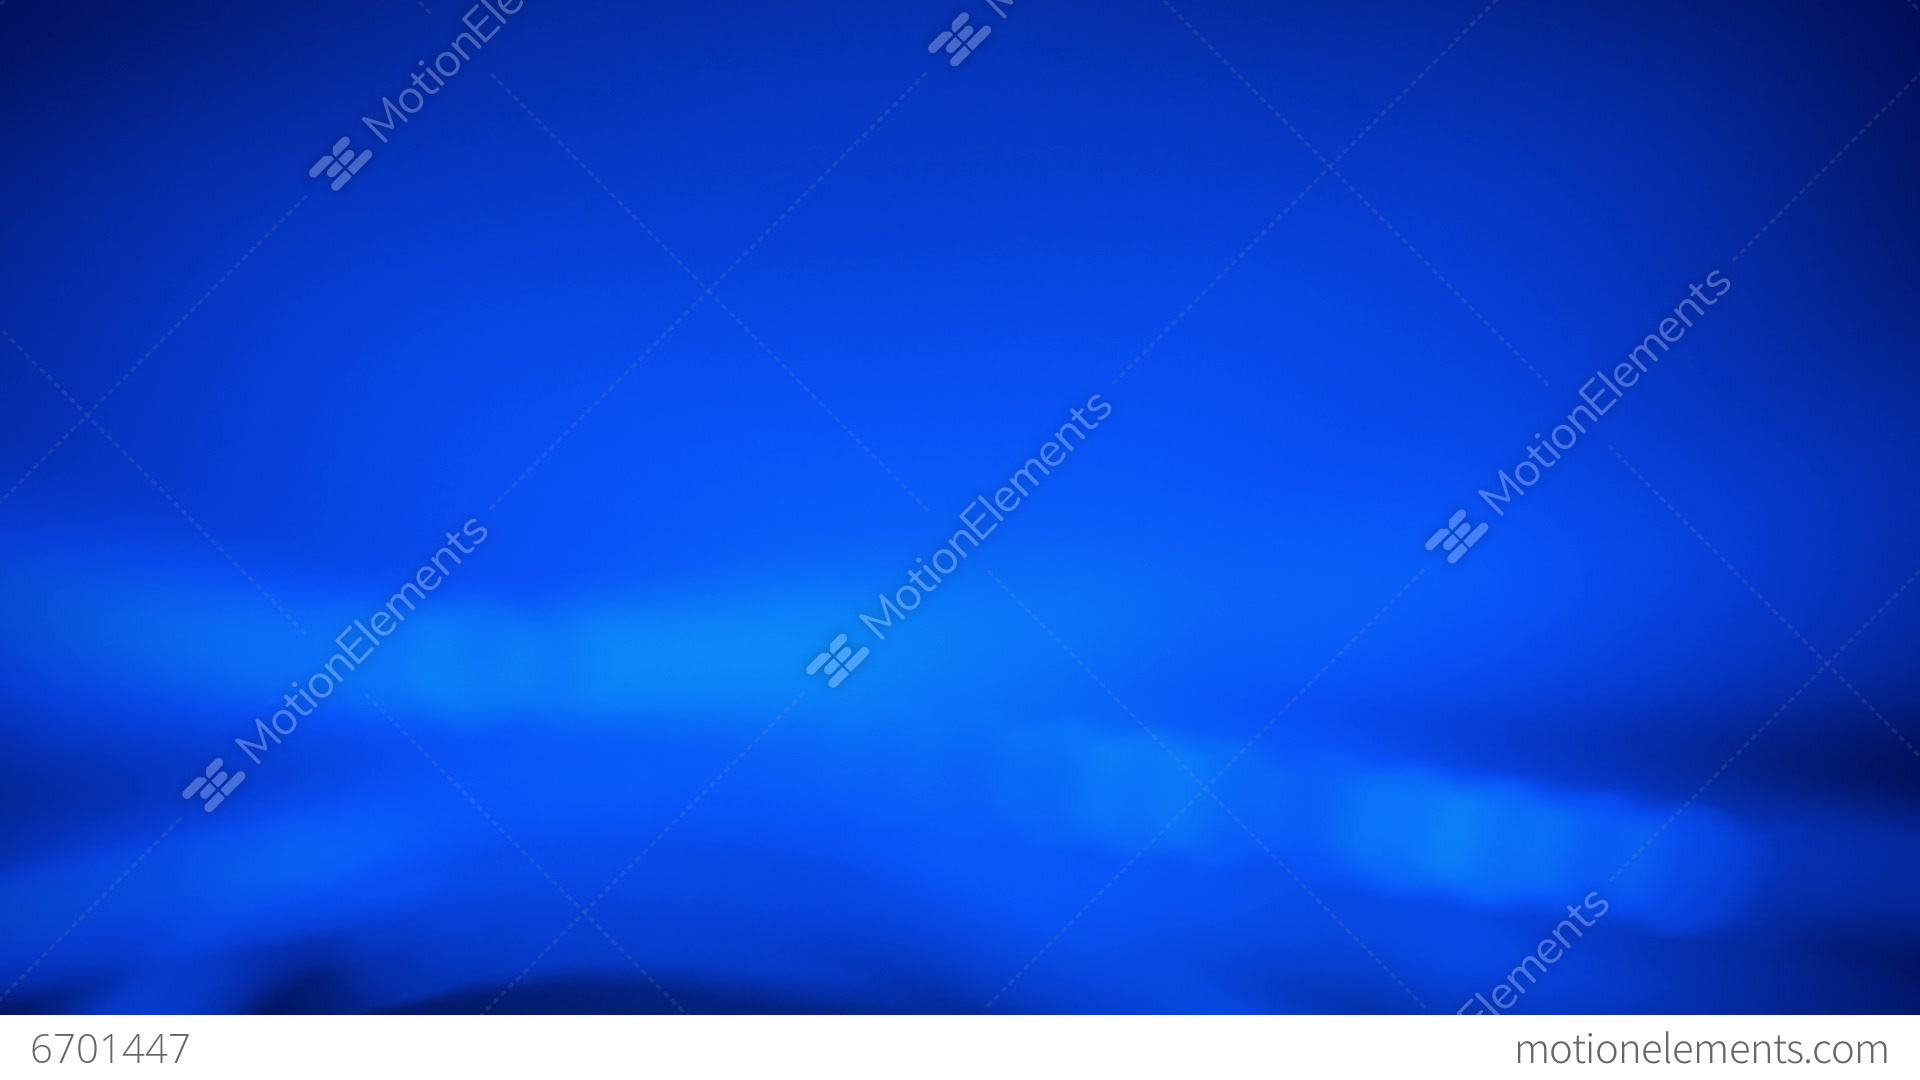 blue technology background pictures - photo #47